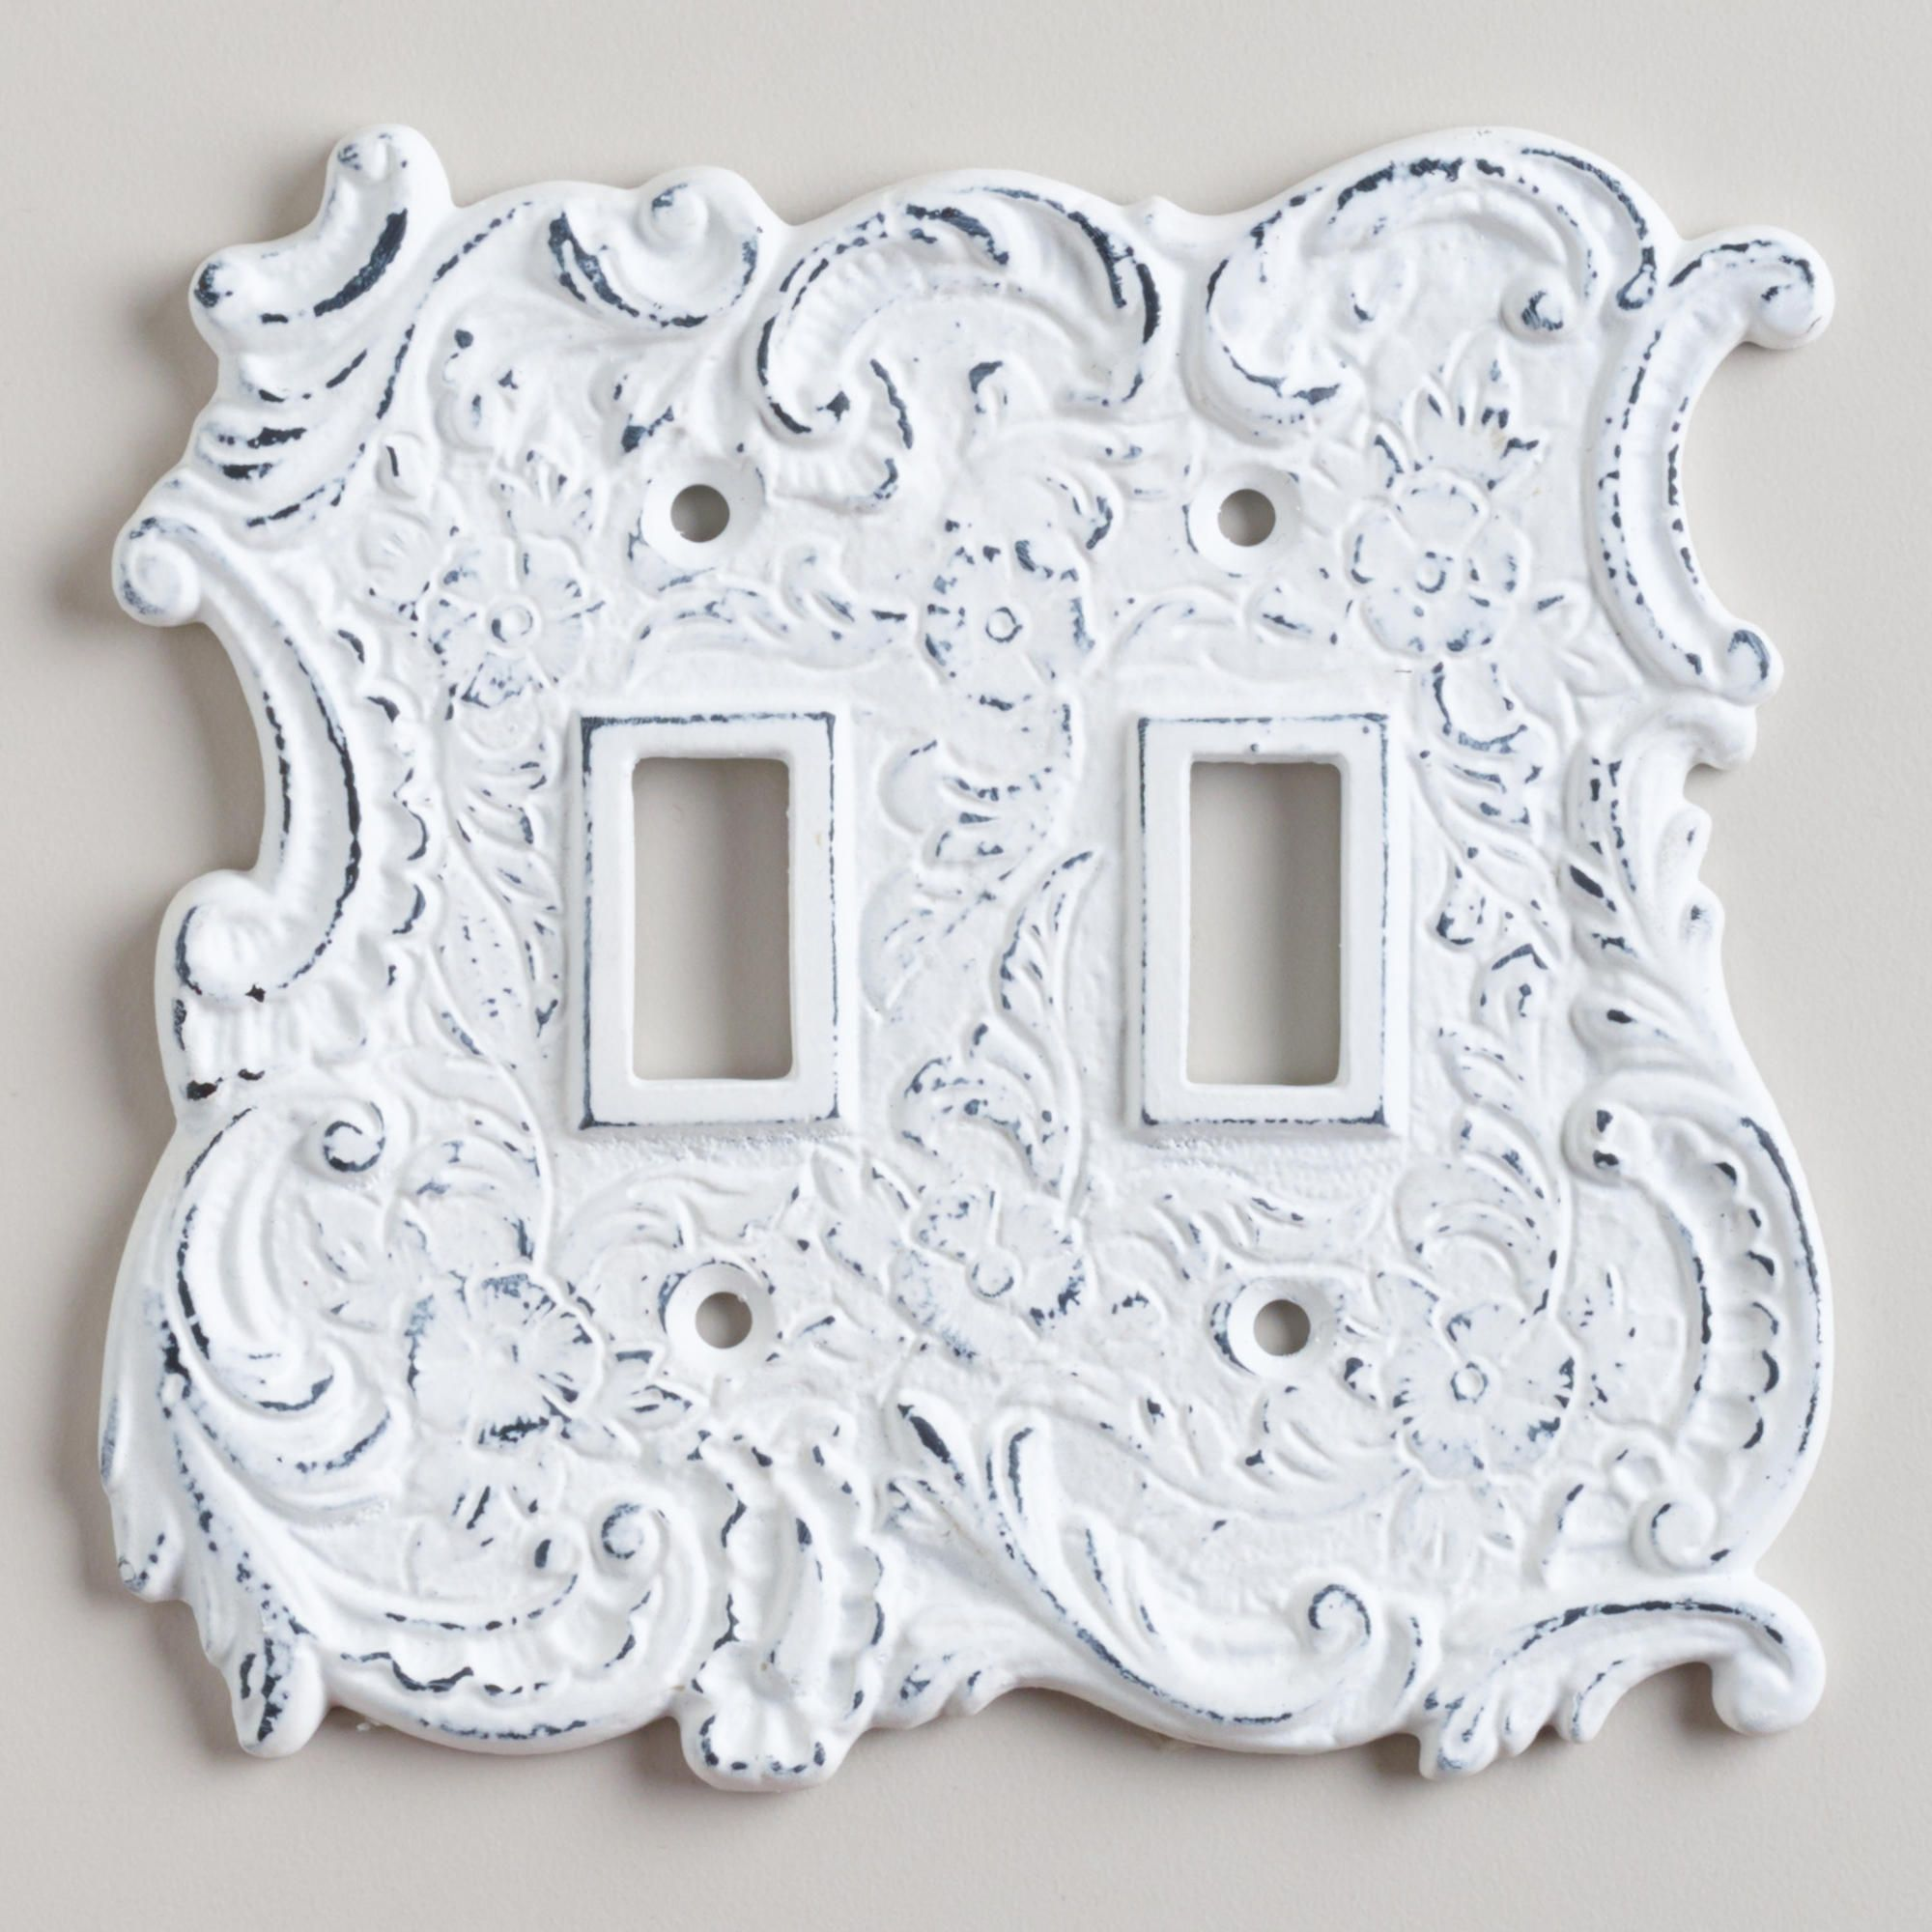 White Decorative Light Switch Covers White Cast Iron Double Switch Plate  $9.99  World Market